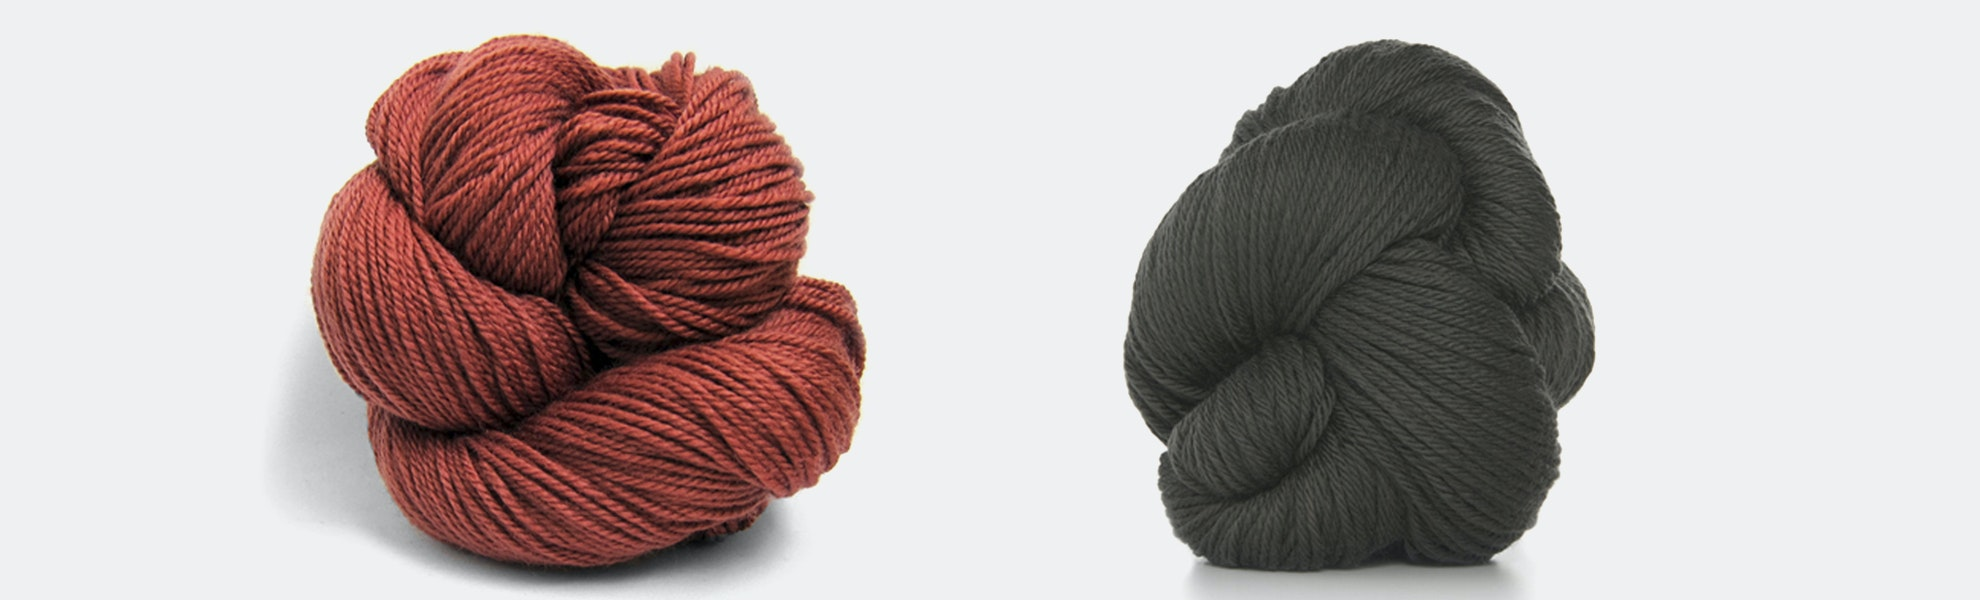 Gems Sport Yarn by Louet Earth Tones (2-Pack)